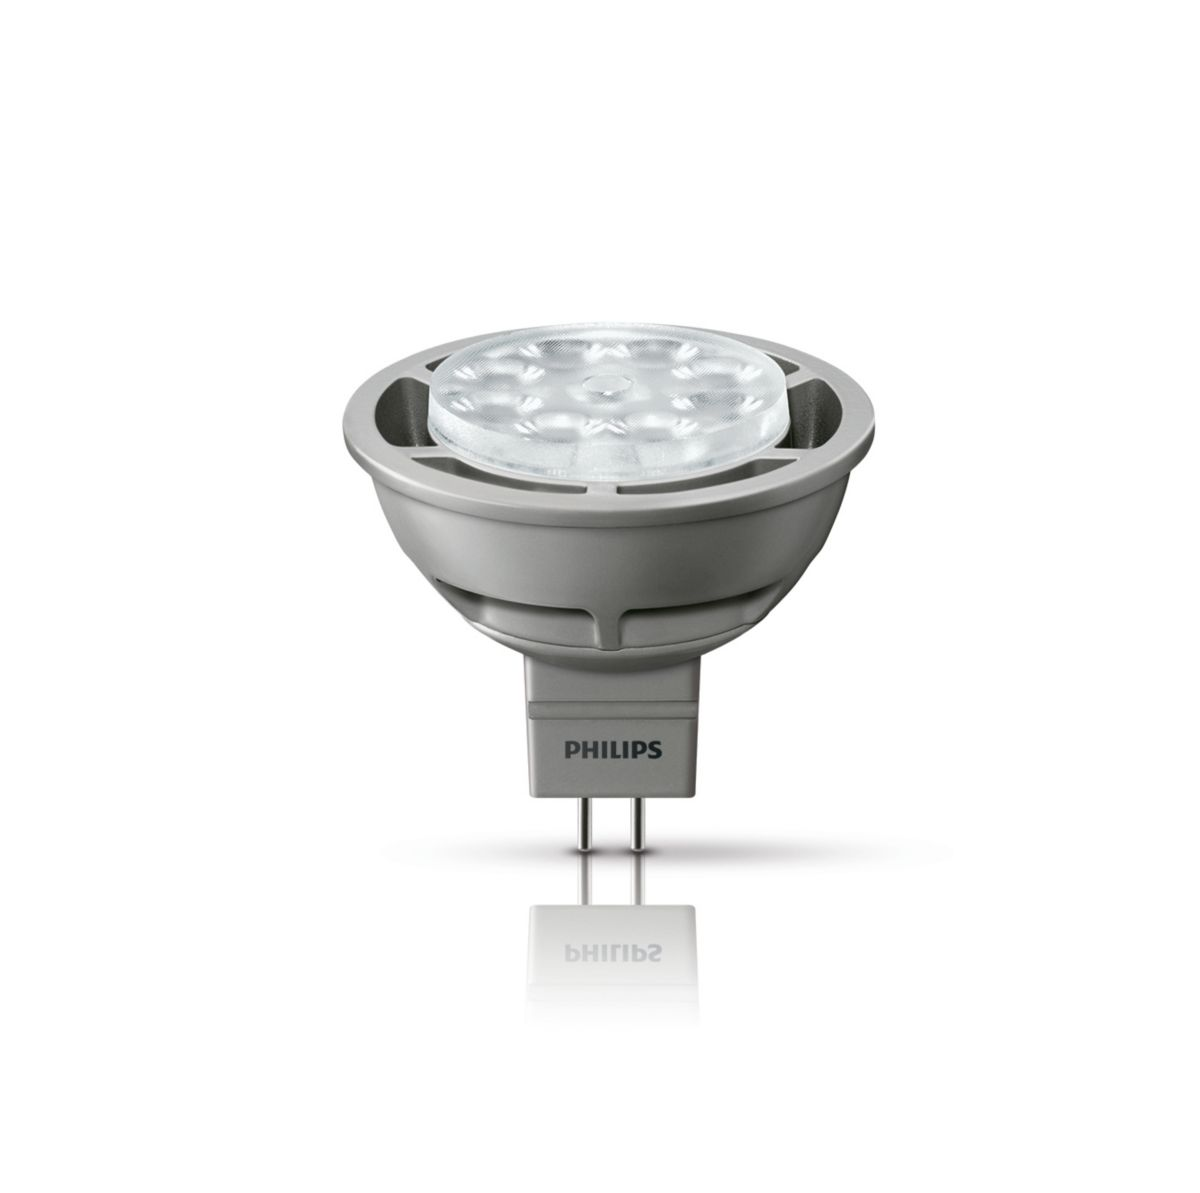 Gx53 Dimmbar Mr16 Gu10 Par16 Led Spots Philips Lighting